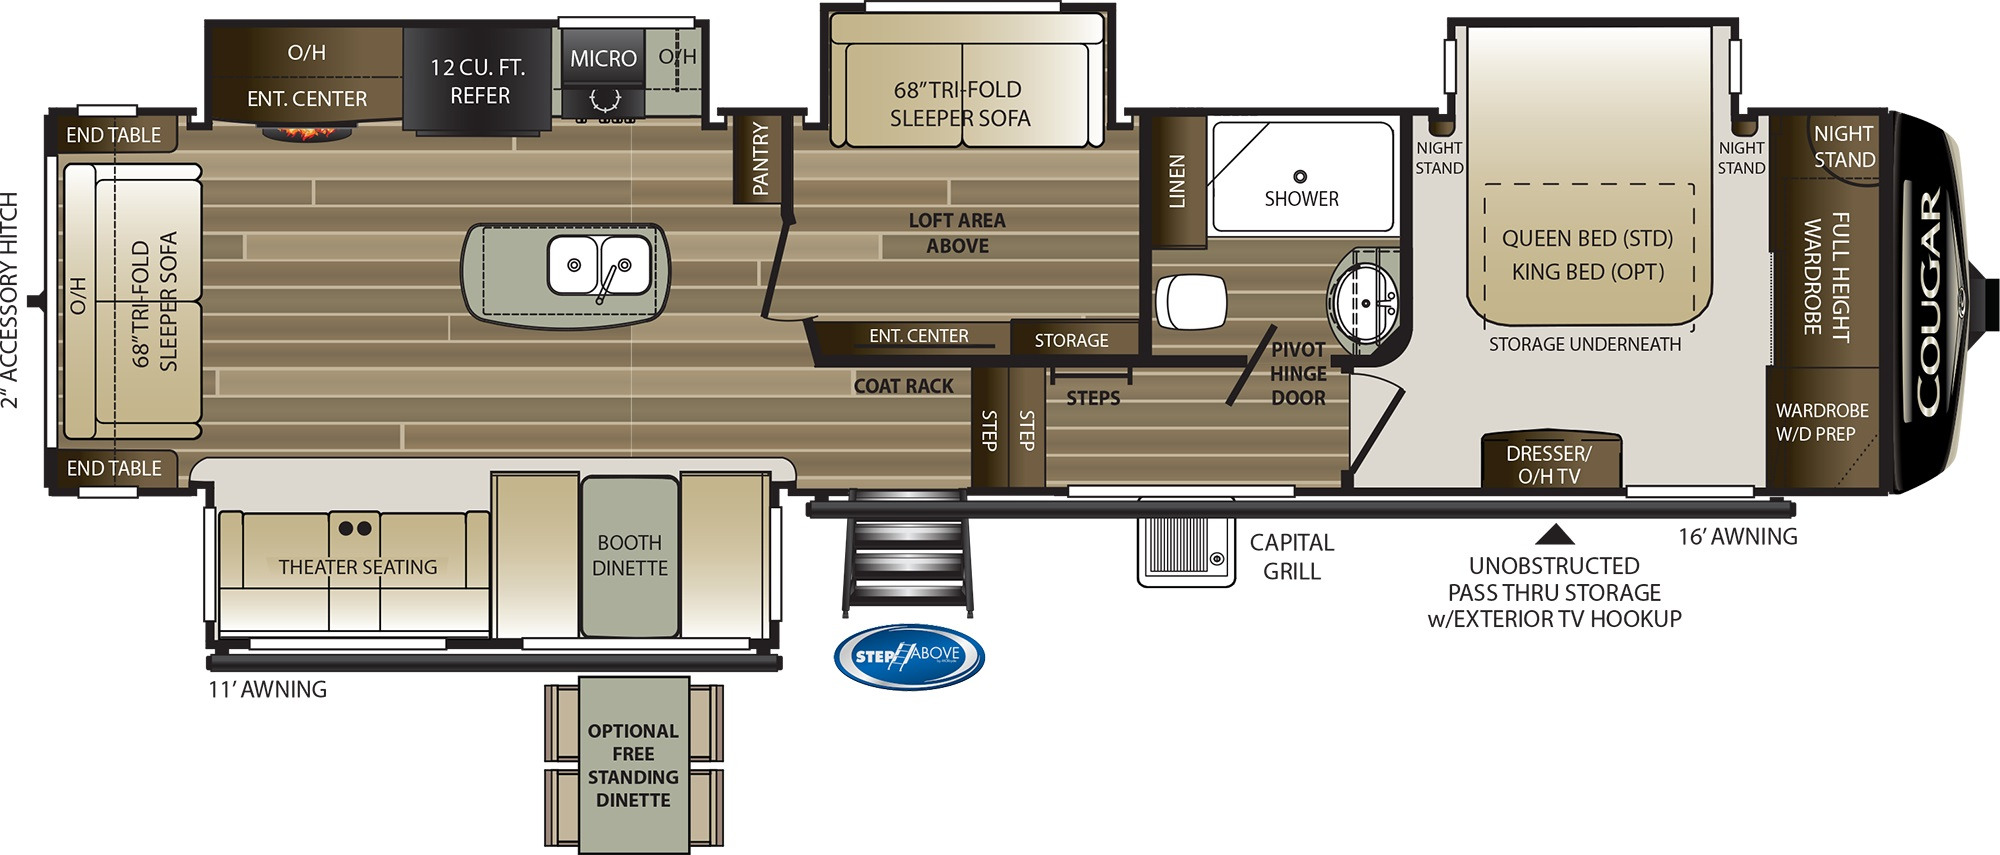 hight resolution of floor plan image